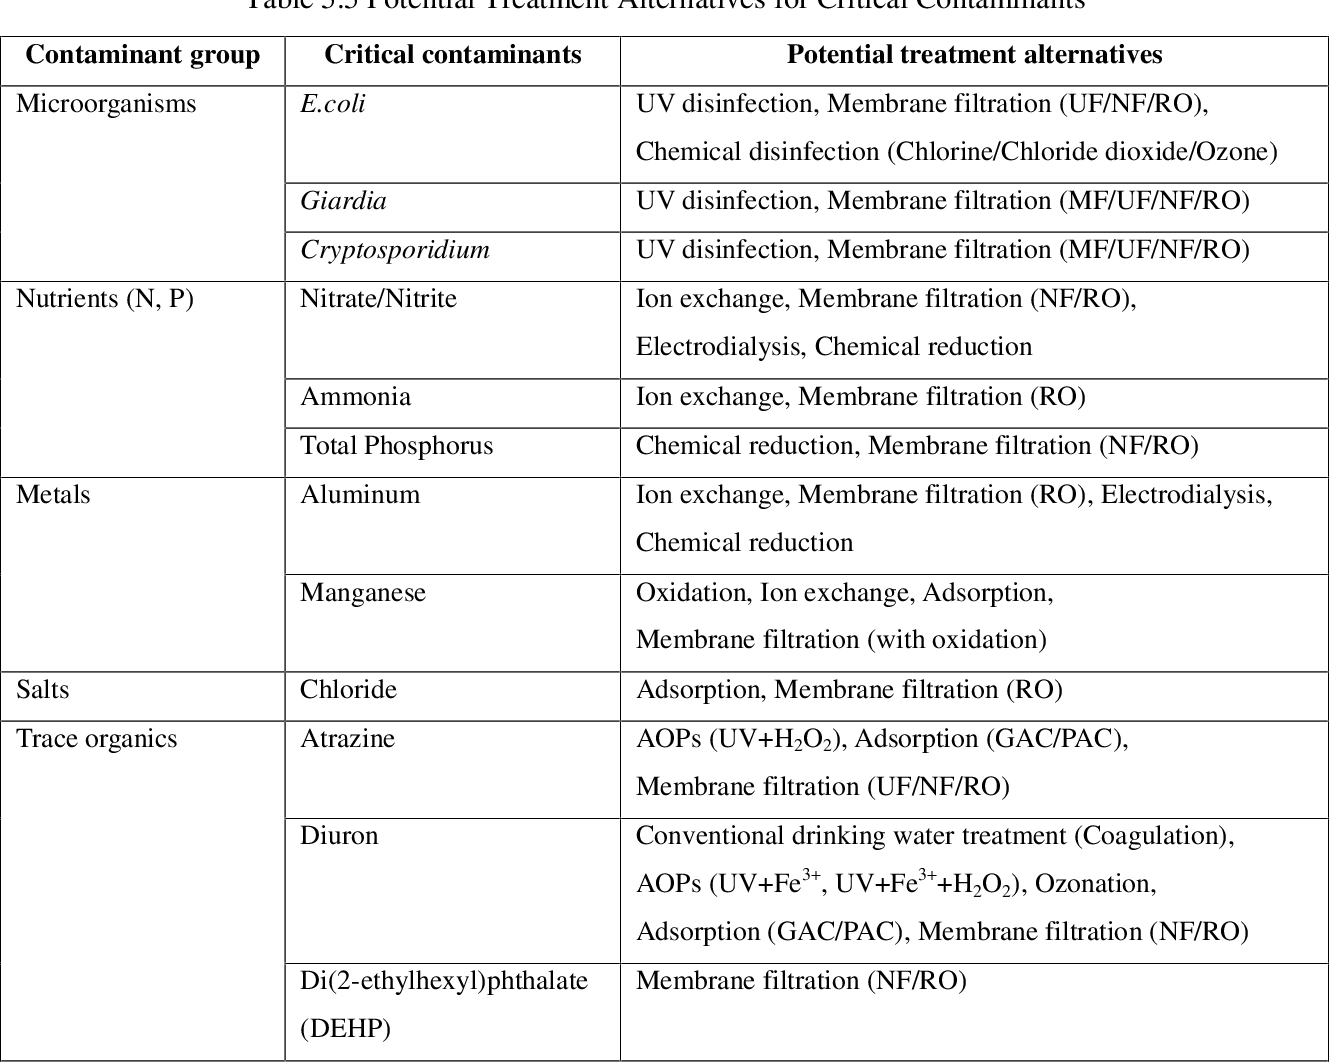 Table 5 5 from Identification and Treatment of Critical